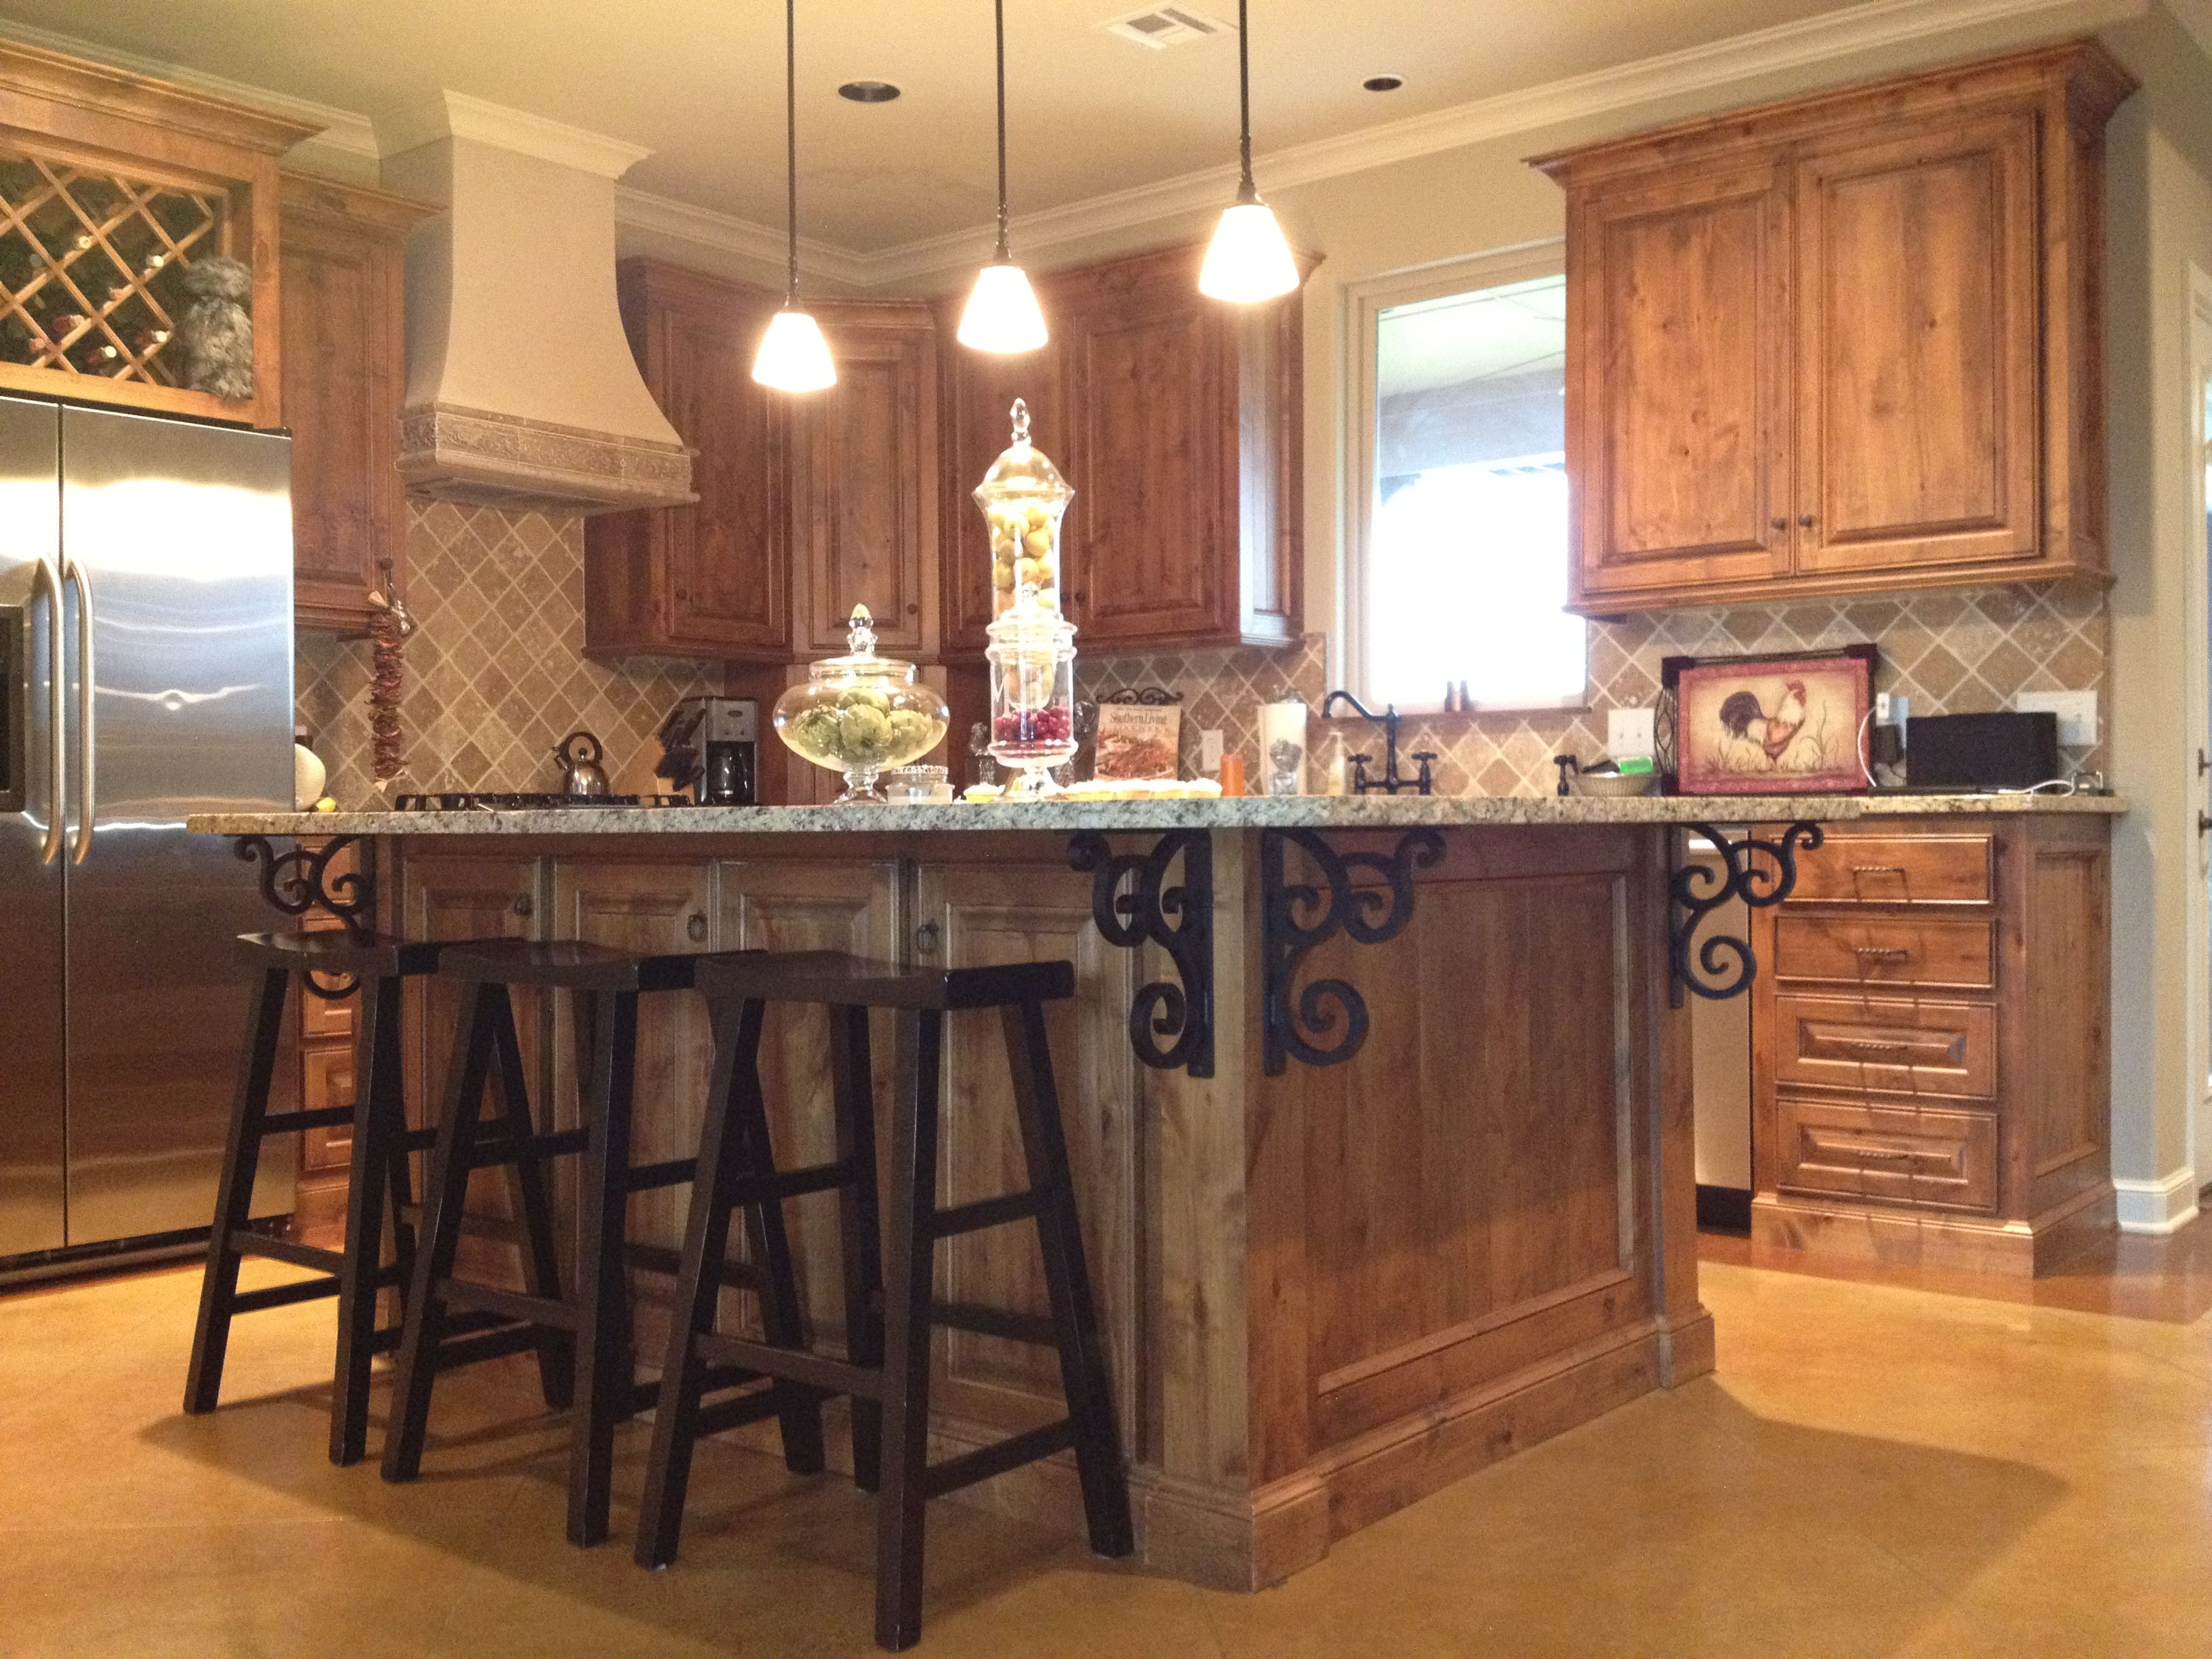 Iron Corbel And Bracket Inspiration Gallery Granite Kitchen Island Wrought Iron Corbels Granite Kitchen